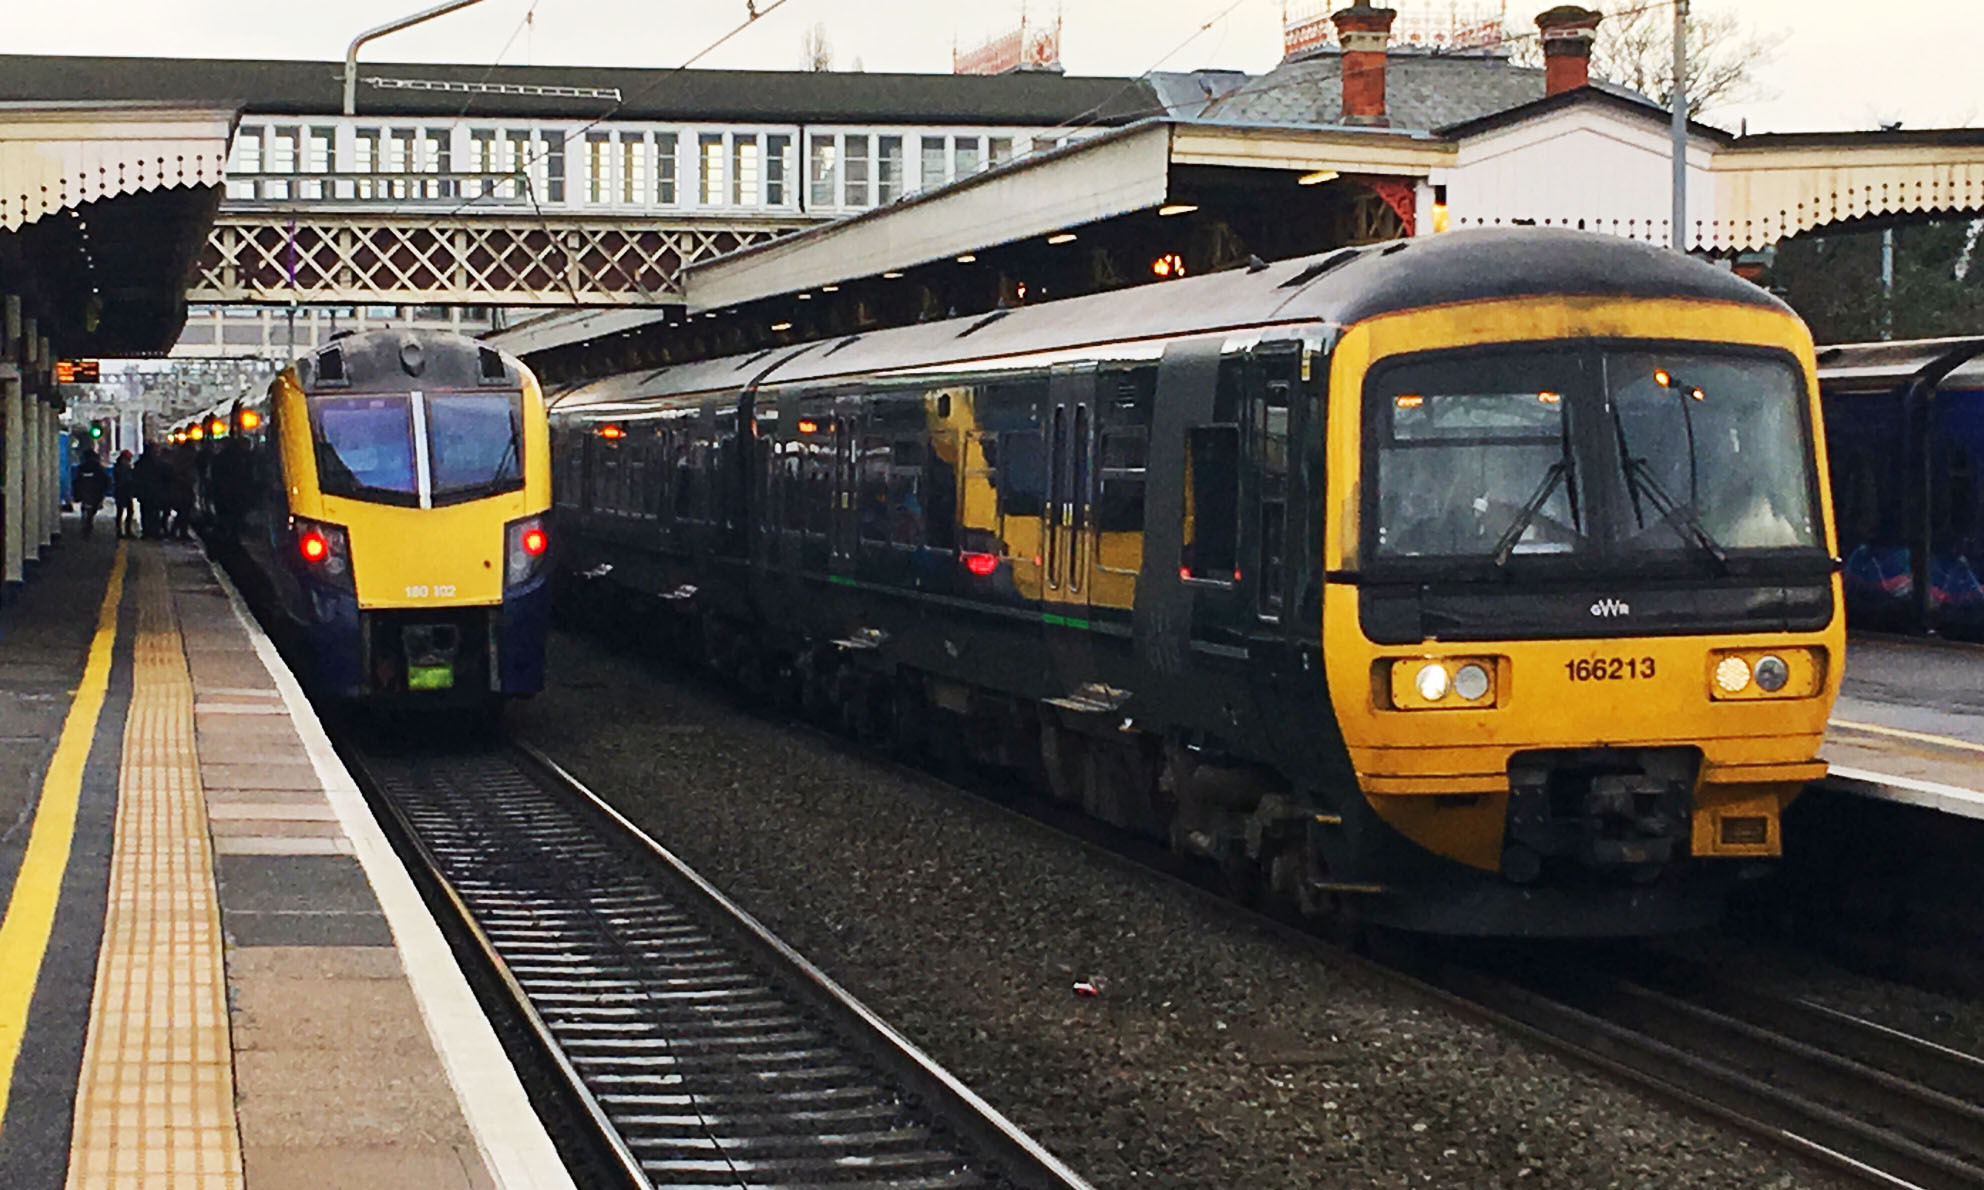 170108 GWR Class 180 and 166 at Slough Station - PIcture: Mike Swift.